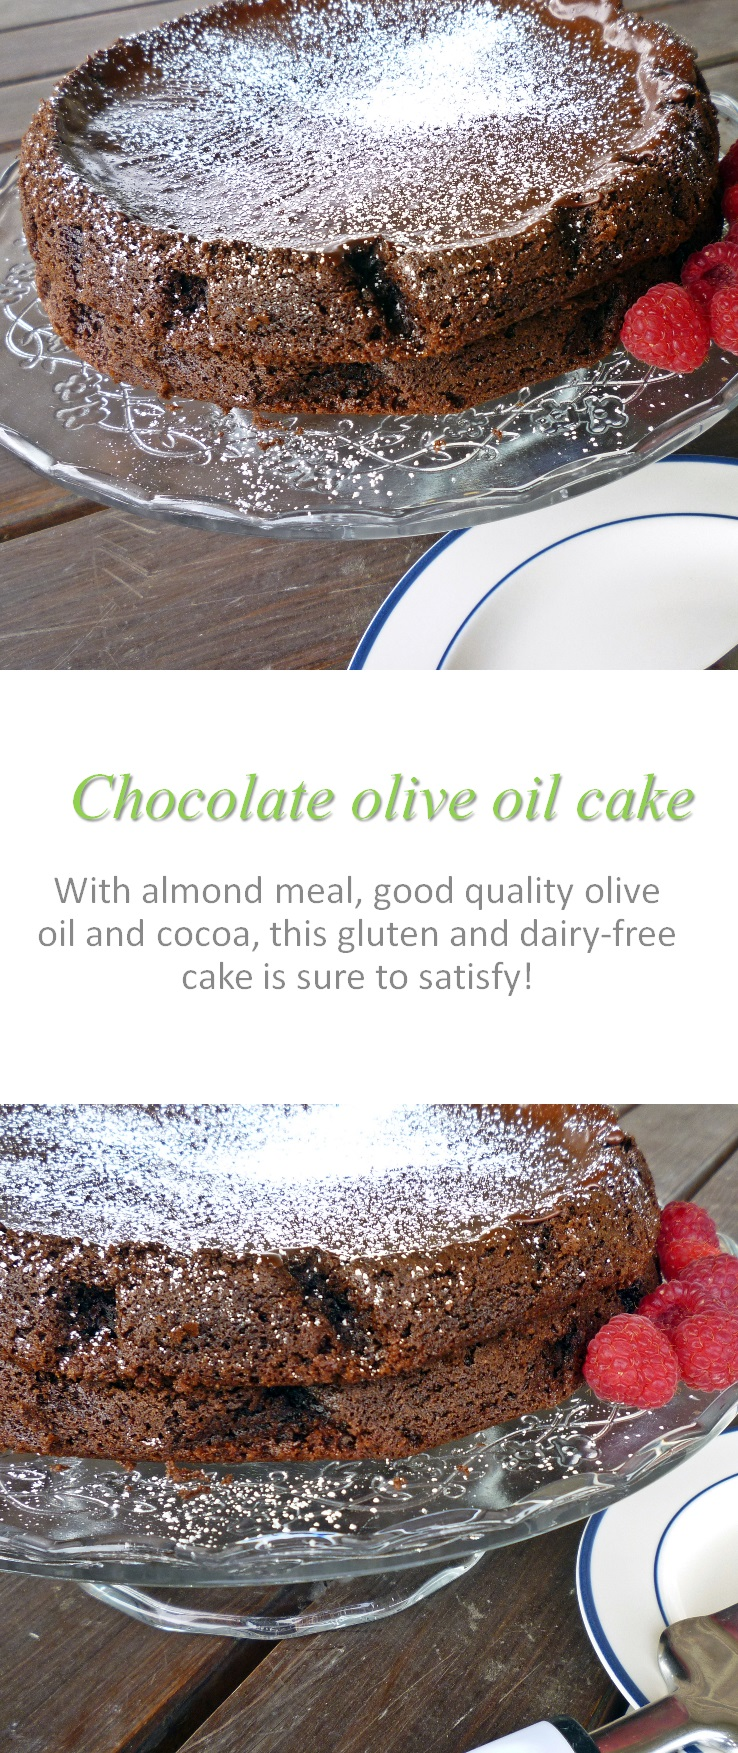 A moist, flourless chocolate cake that is the best one ever made, according to my family! Using olive oil, good quality cocoa and love ...! #flourlesscake